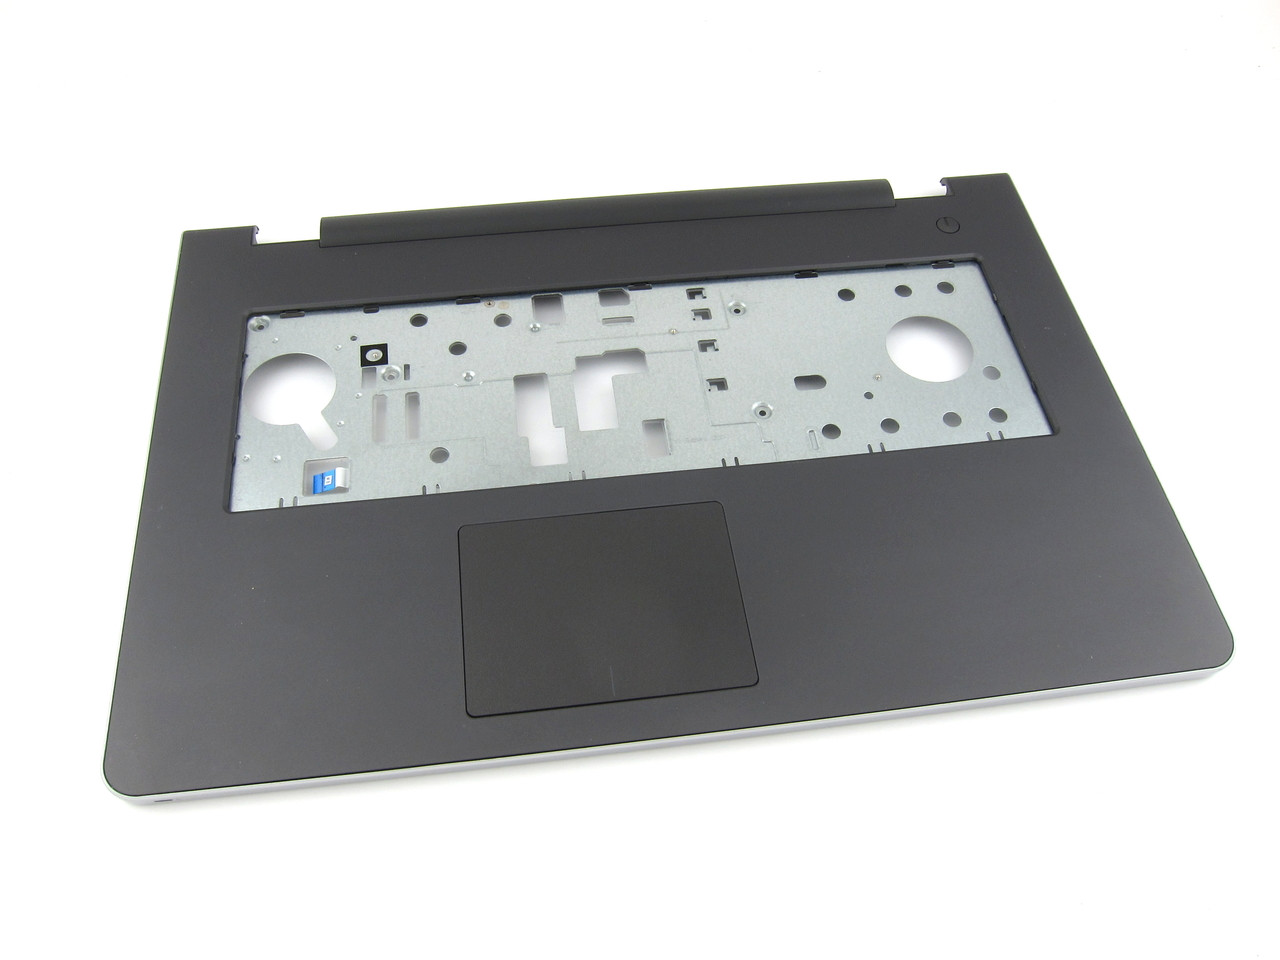 Dell Inspiron 17 5755 / 5758 / 5759 Touchpad Palmrest Assembly - GFYHH